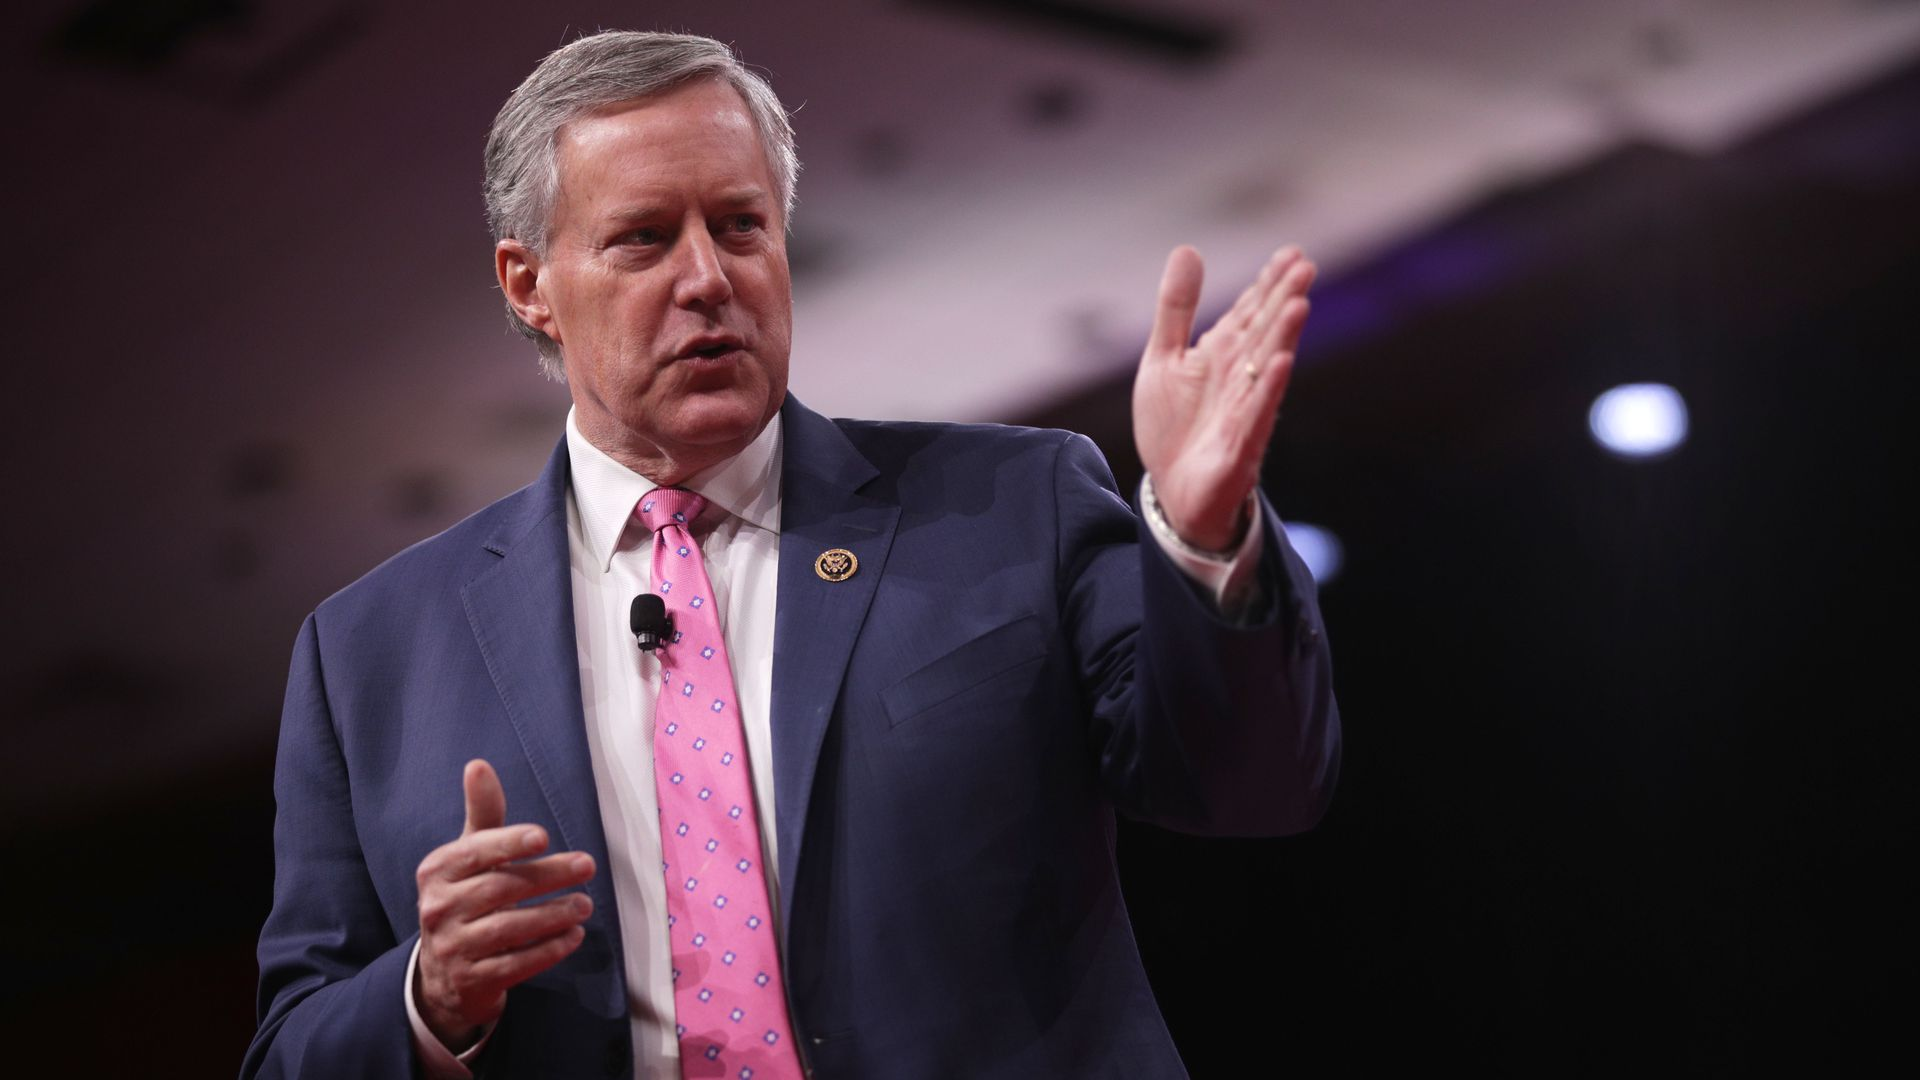 Rep. Mark Meadows speaks on stage at CPAC